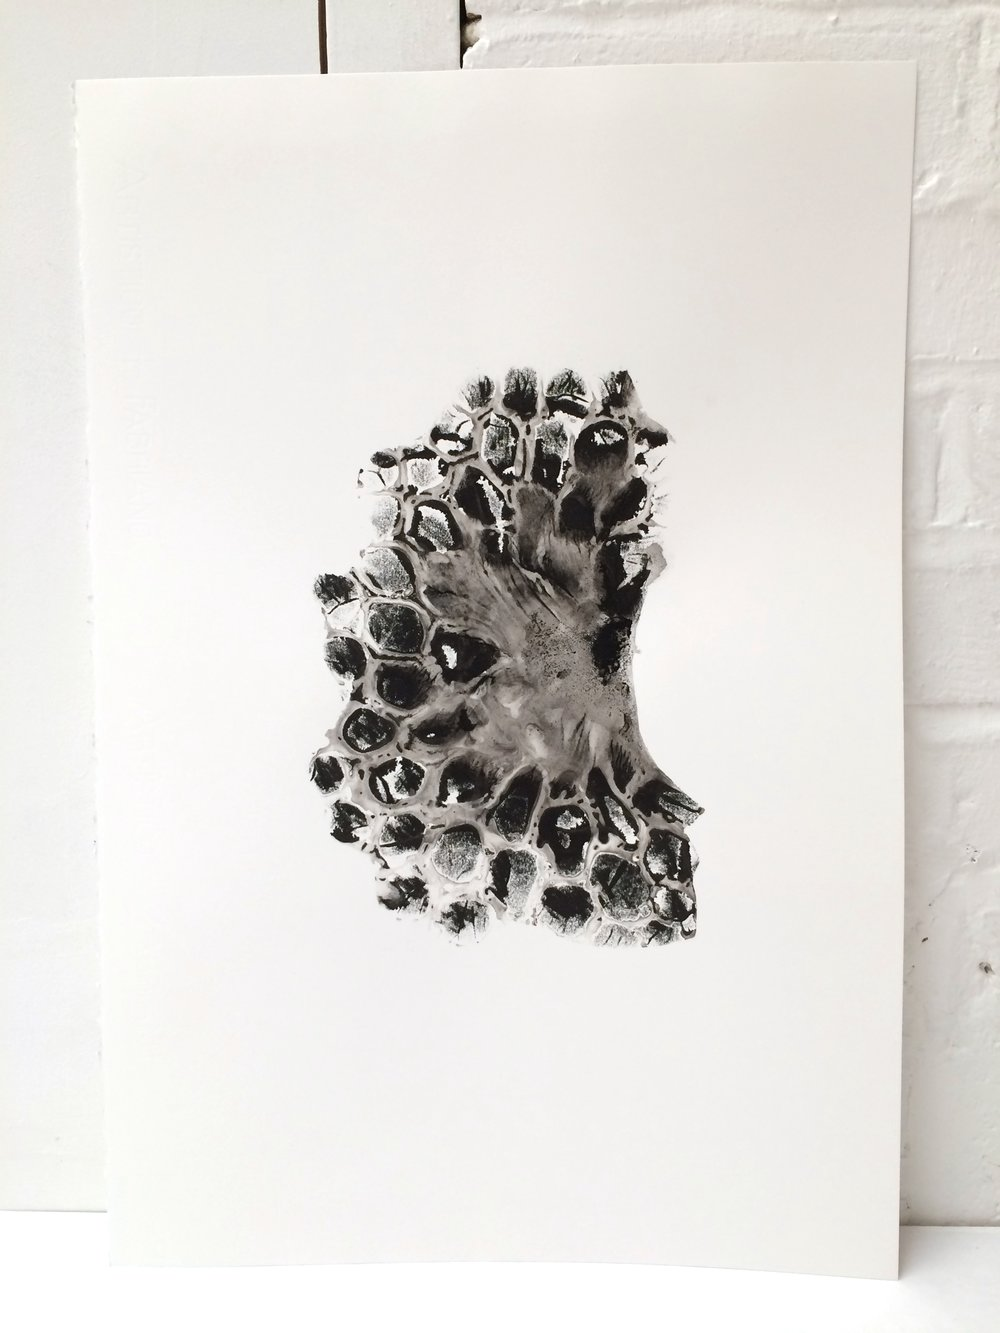 Lucia Pizzani, Spores Series. Monotypes, Original work 1200 GBP, Edition on Paper 80 GBP (Edition of 30)